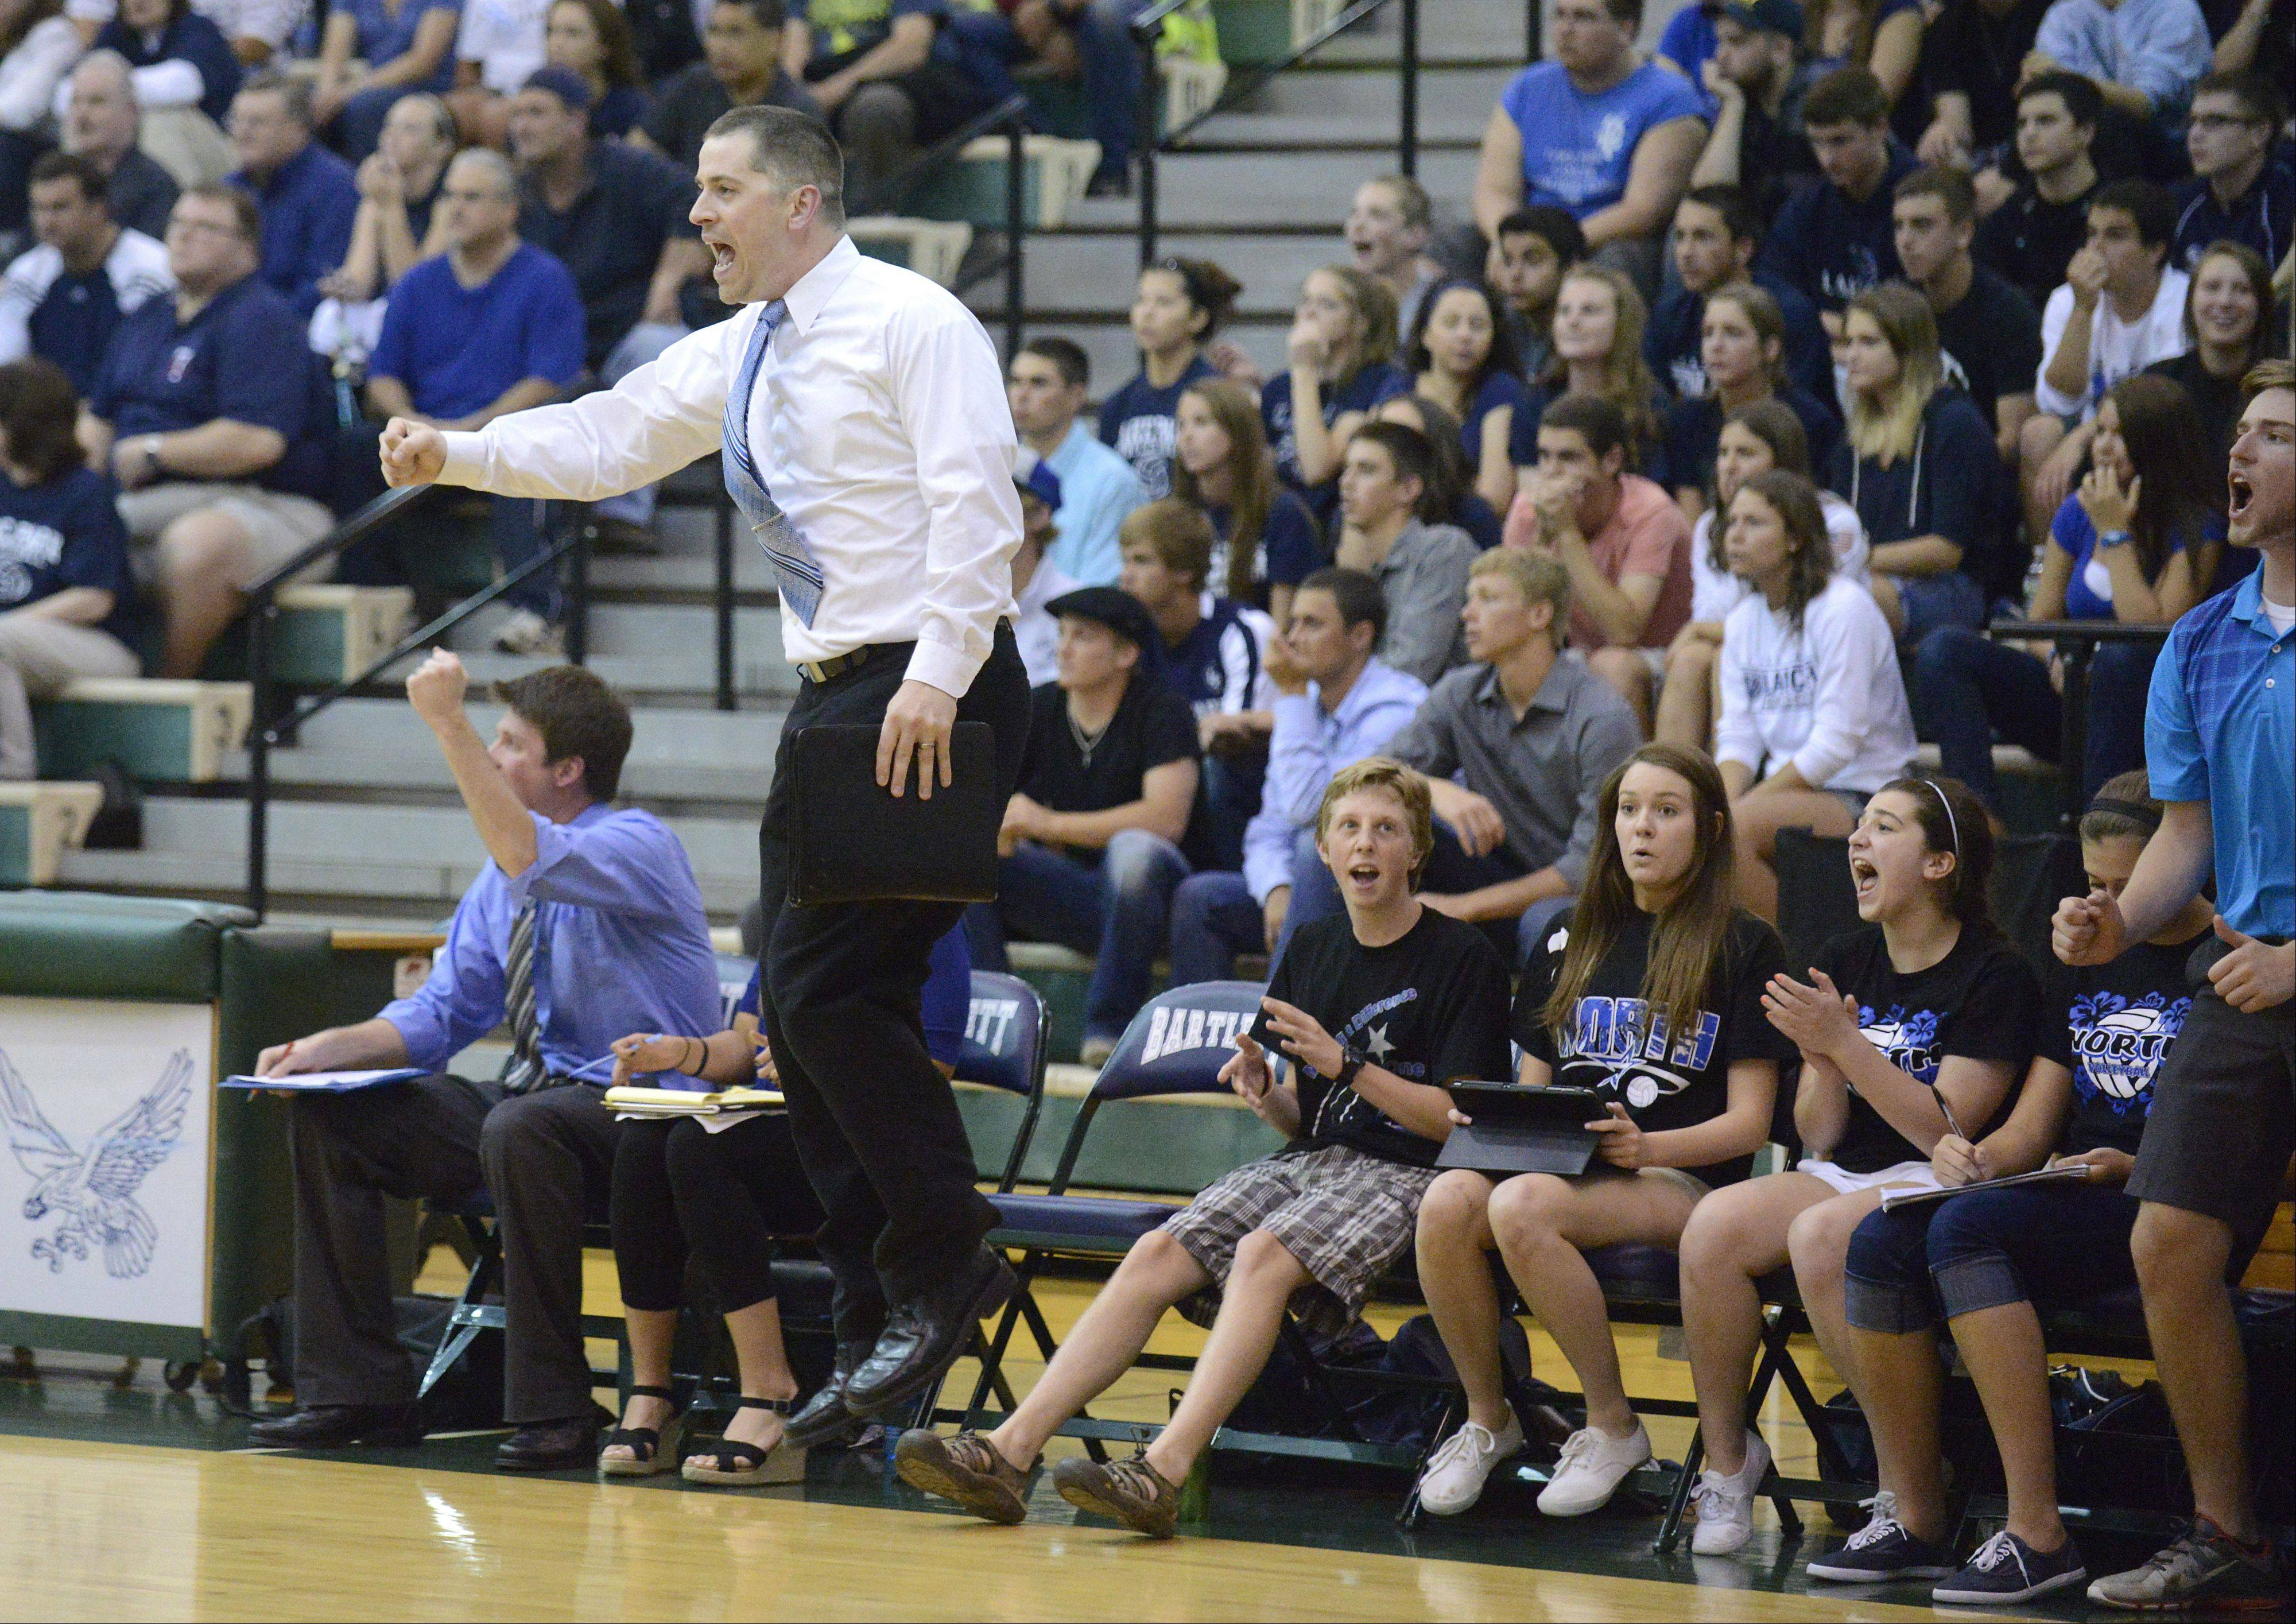 St. Charles North coach Todd Weimer celebrates getting a point closer to the North Stars winning the second game in Tuesday's sectional against Lake Park at Bartlett.